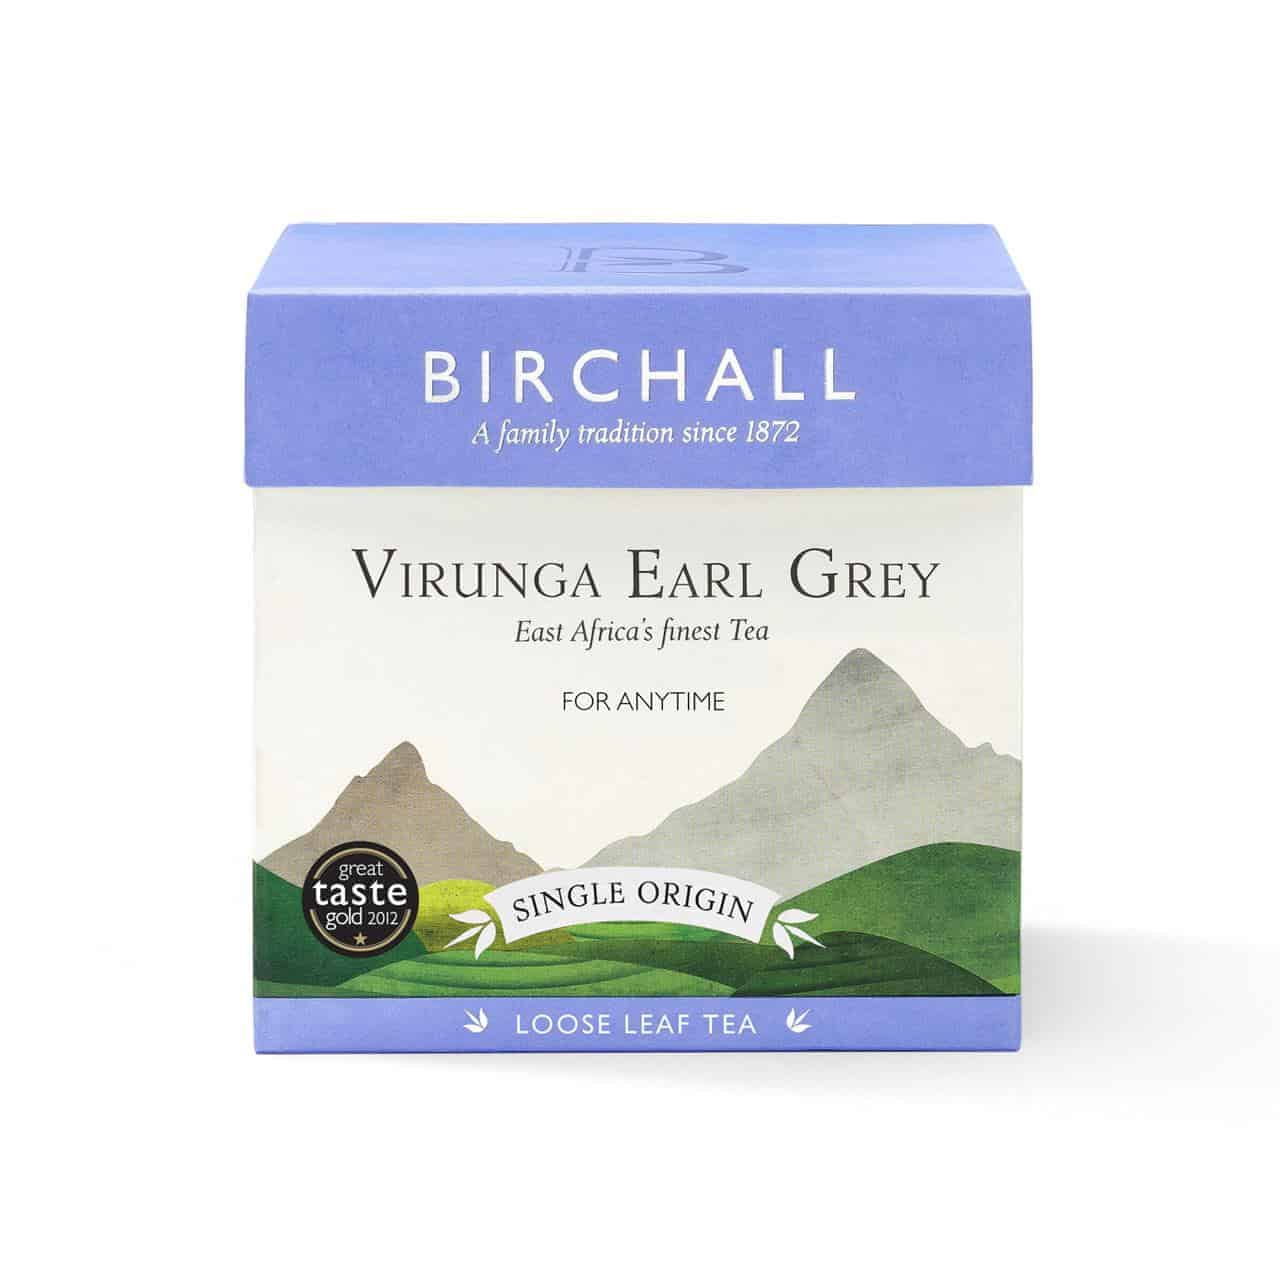 Birchall Virunga Earl Grey - Loose Leaf Tea